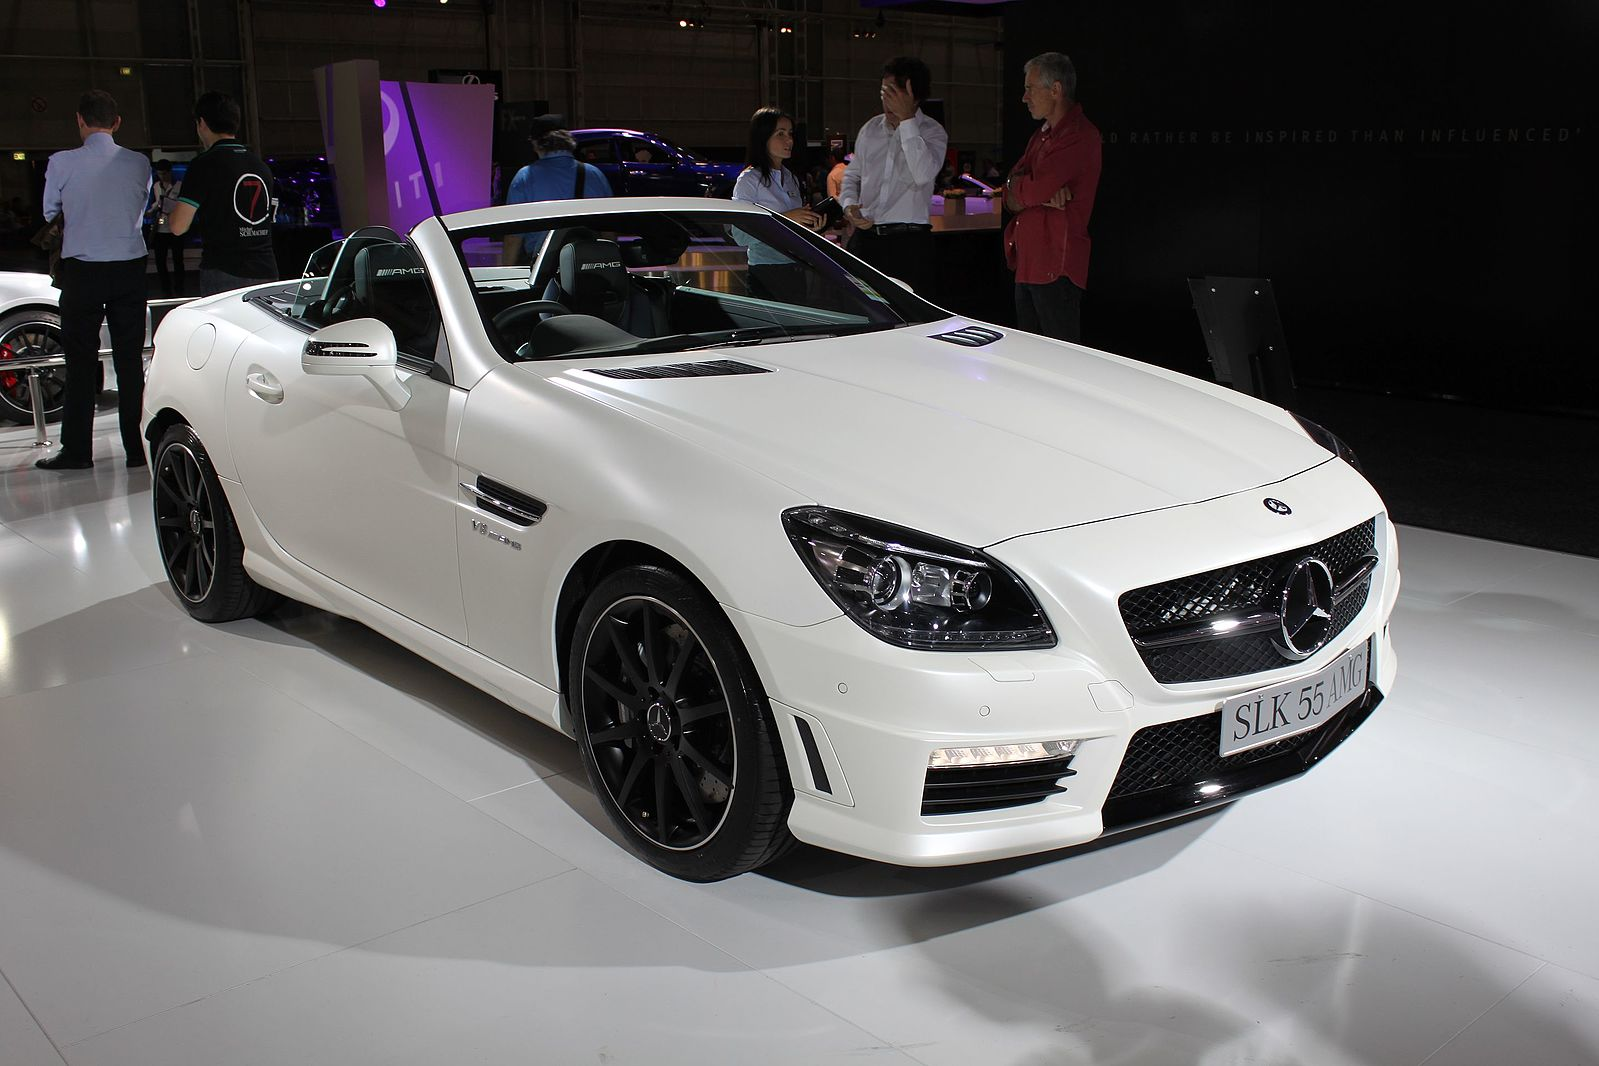 2012_Mercedes-Benz_SLK_55_AMG_(R_172)_roadster_(15923761359)